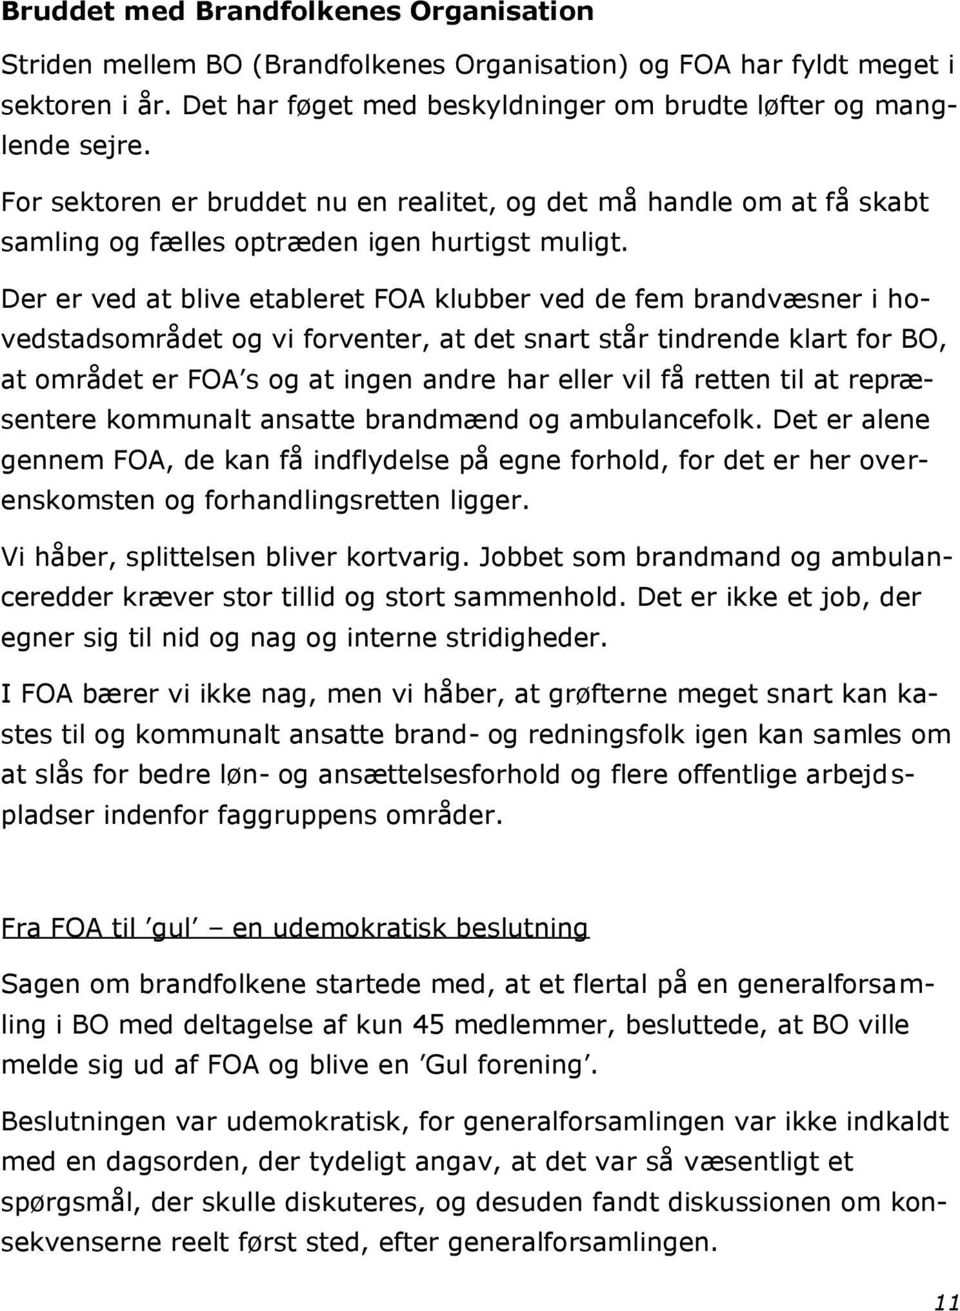 Der er ved at blive etableret FOA klubber ved de fem brandvæsner i hovedstadsområdet og vi forventer, at det snart står tindrende klart for BO, at området er FOA s og at ingen andre har eller vil få